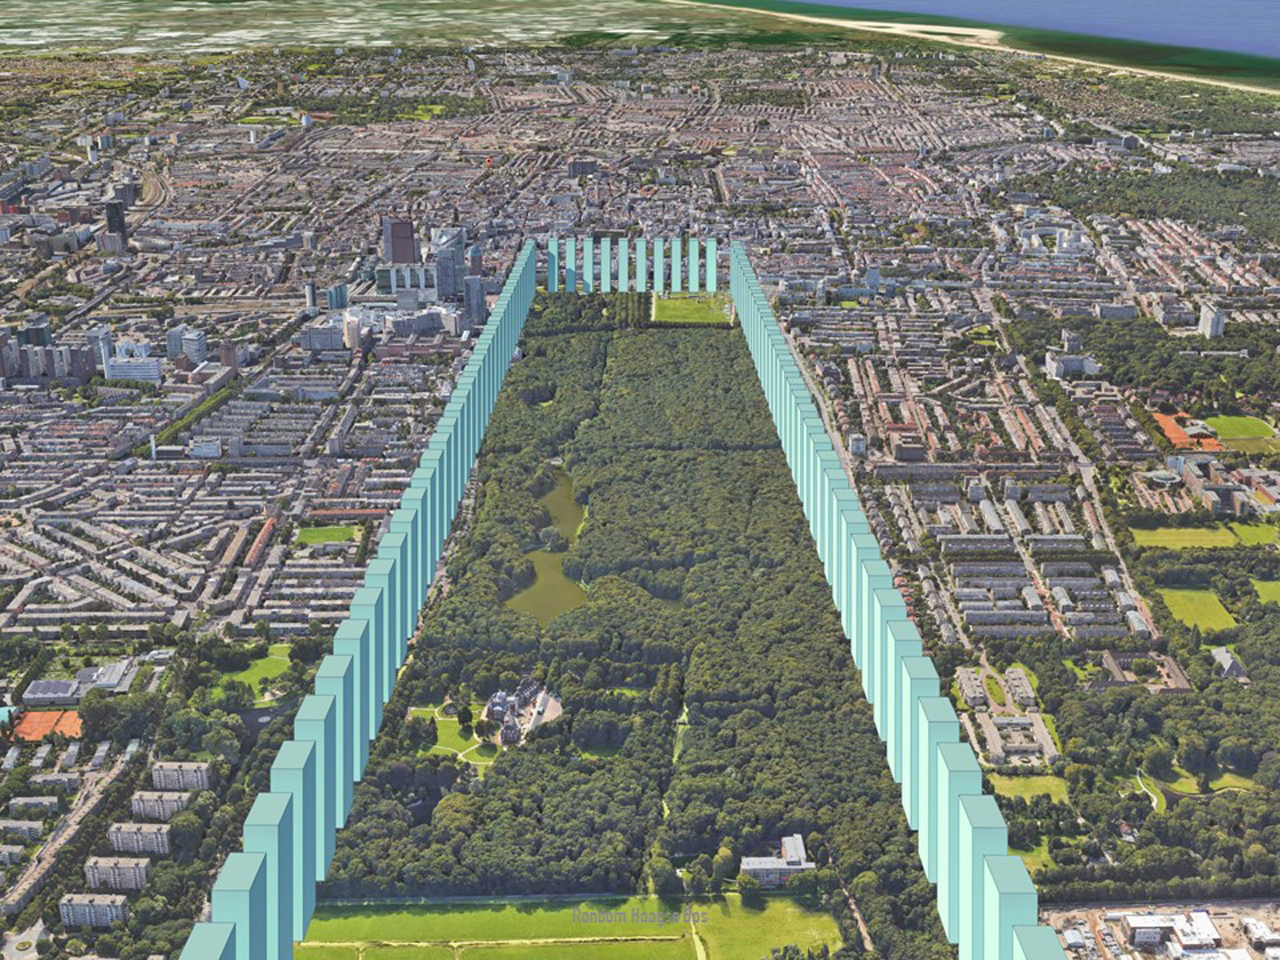 Is Het Haagse Bos The Hague's new Central Park?